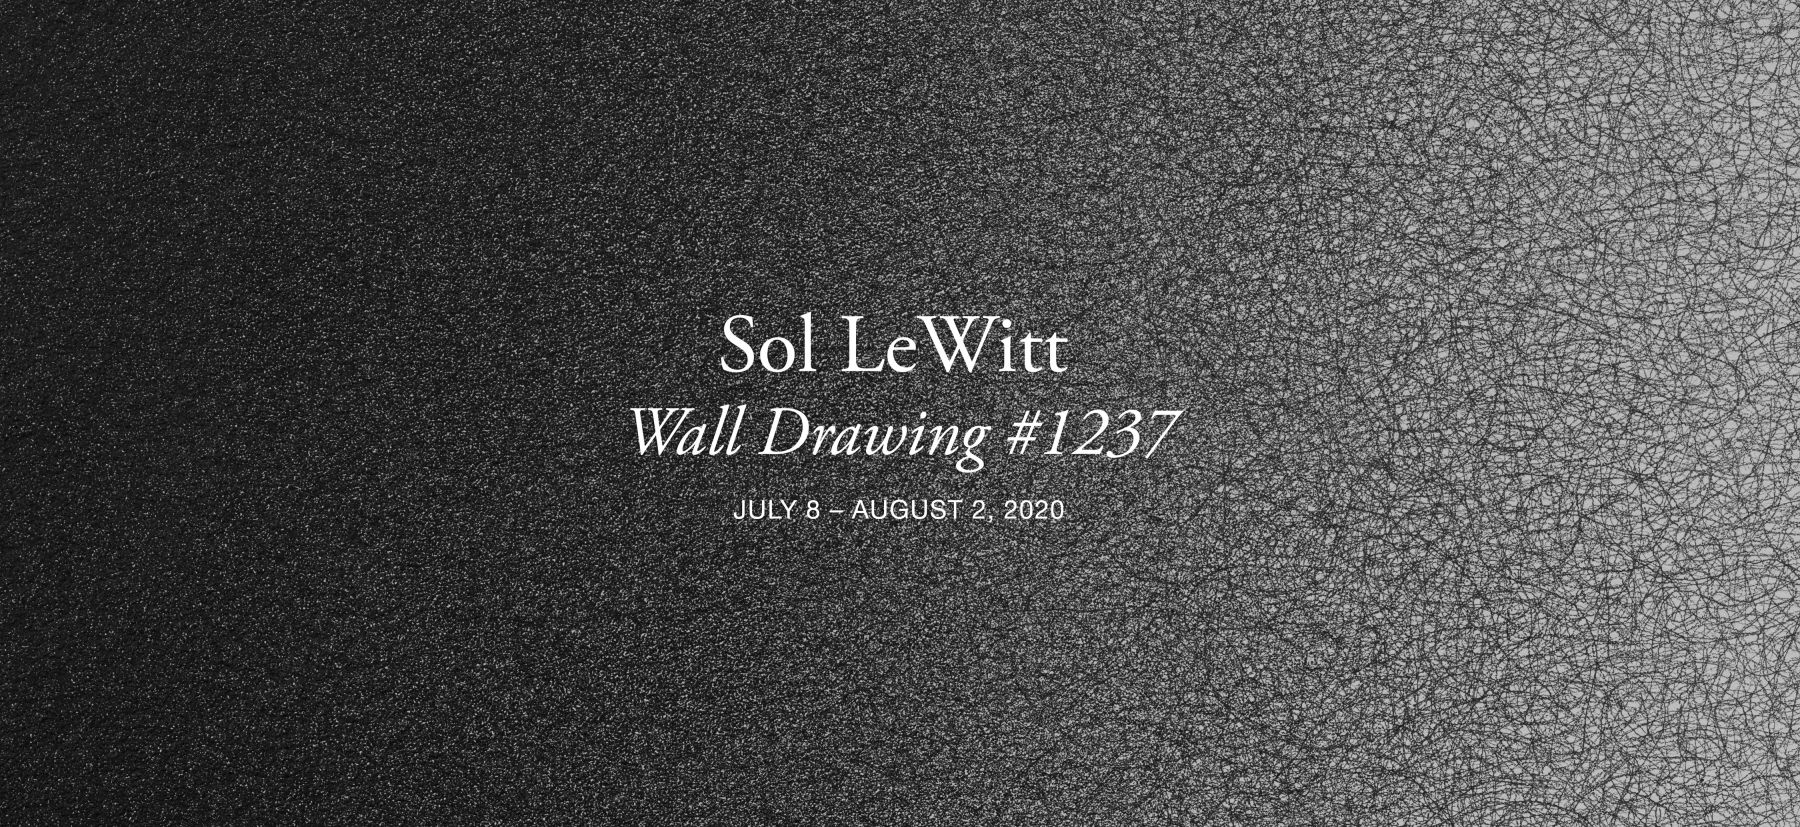 """Detail of Sol LeWitt's """"Wall Drawing #1237, Scribbles (BKSR)."""" First installation: Steve Reich and Beryl Korot residence, Pound Ridge, New York, May 2007. graphite. 9 x 7 ft (274.3 x 213.4 cm)."""